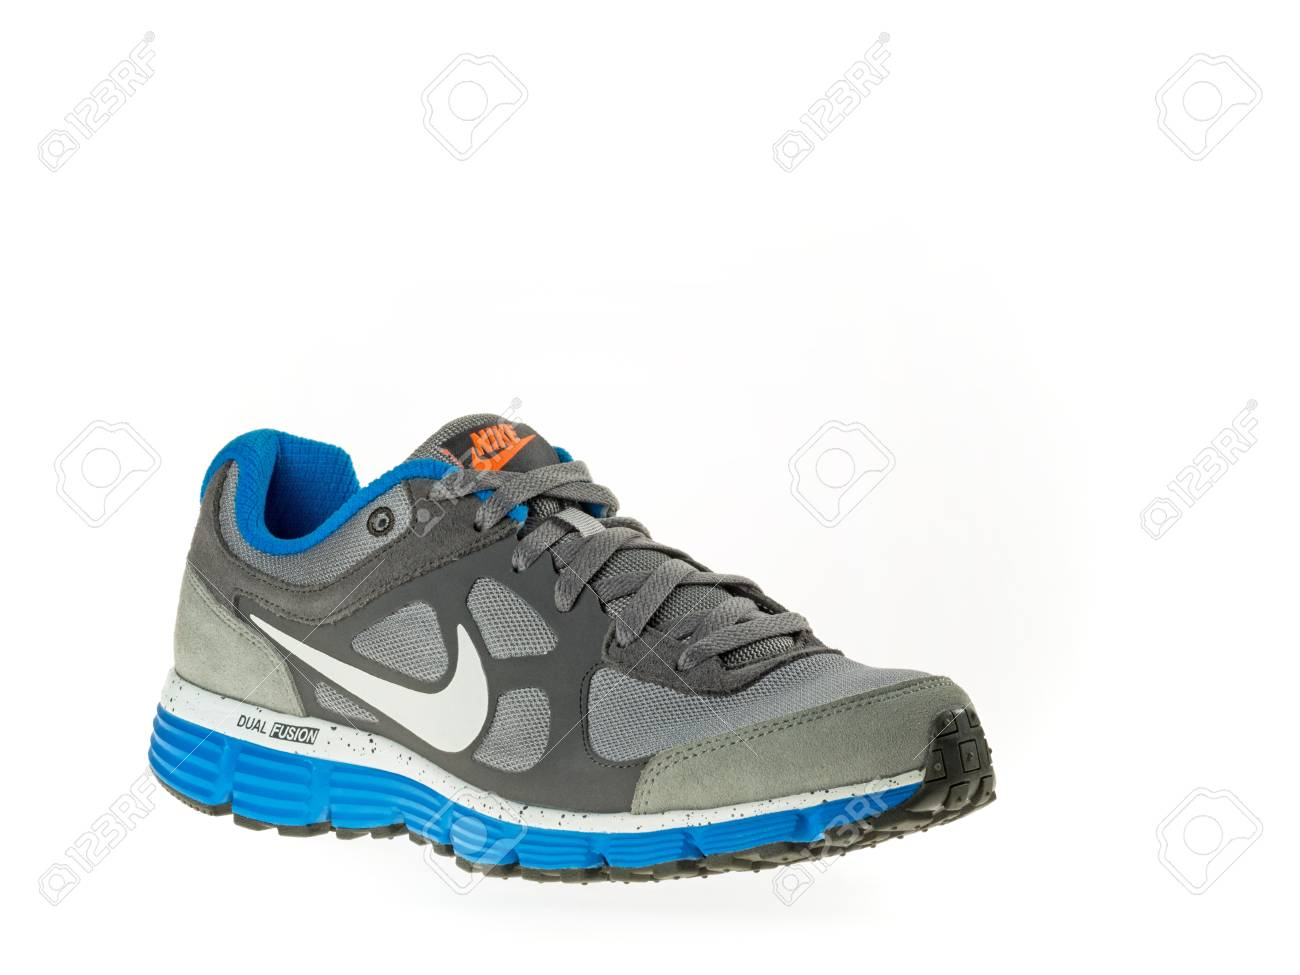 Chaussure 2014 Style New Le Février De Istanbul 21 Turquie Nike IxwqAavYS